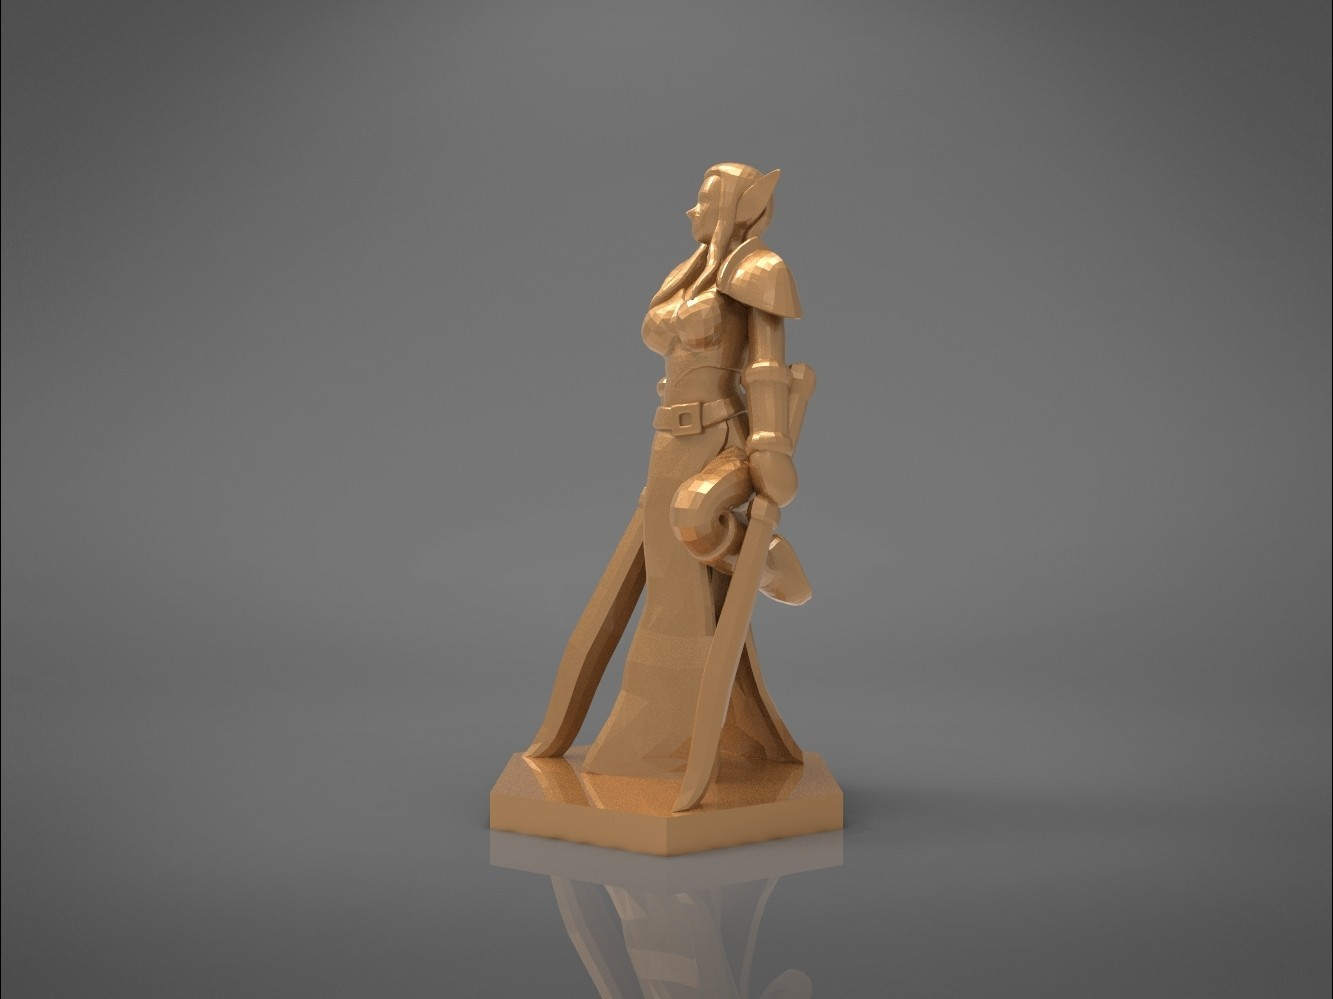 Warrior_2-right_perspective.317.jpg Download STL file ELF WARRIOR FEMALE CHARACTER GAME FIGURE 3D print model • 3D printing object, 3D-mon